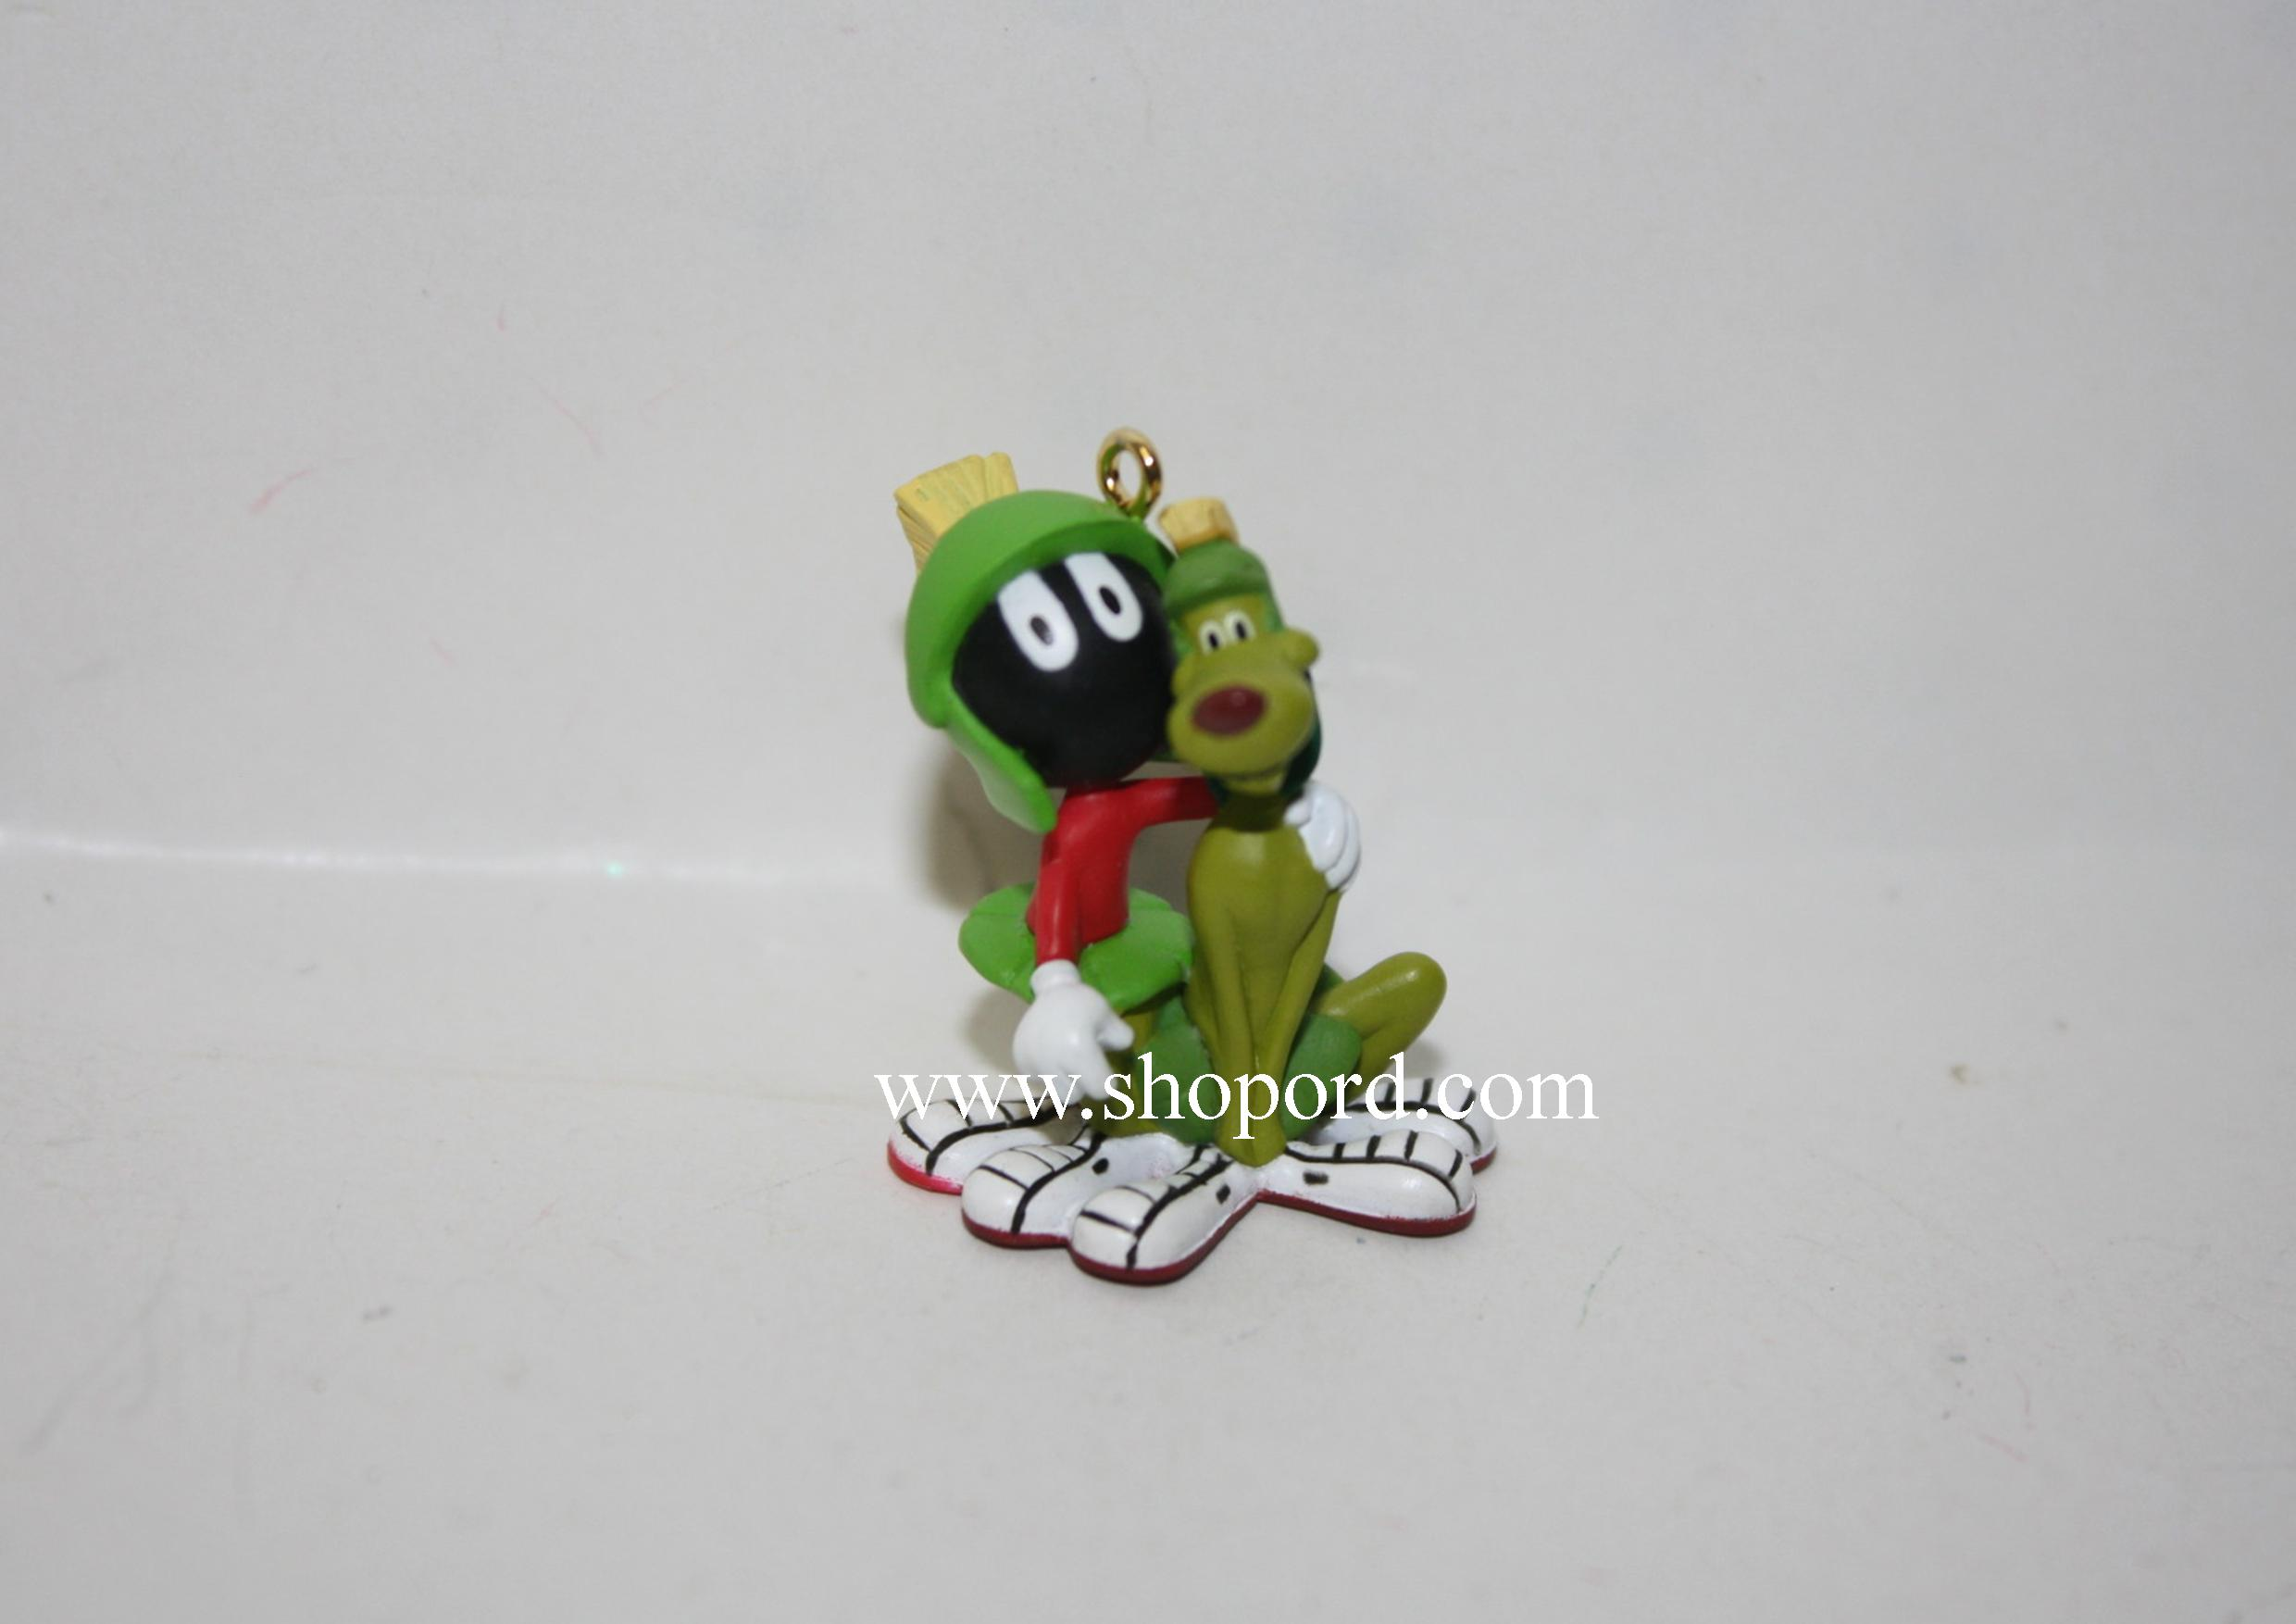 Hallmark 1999 Marvin The Martian Miniature Ornament Looney Tunes QXM4657